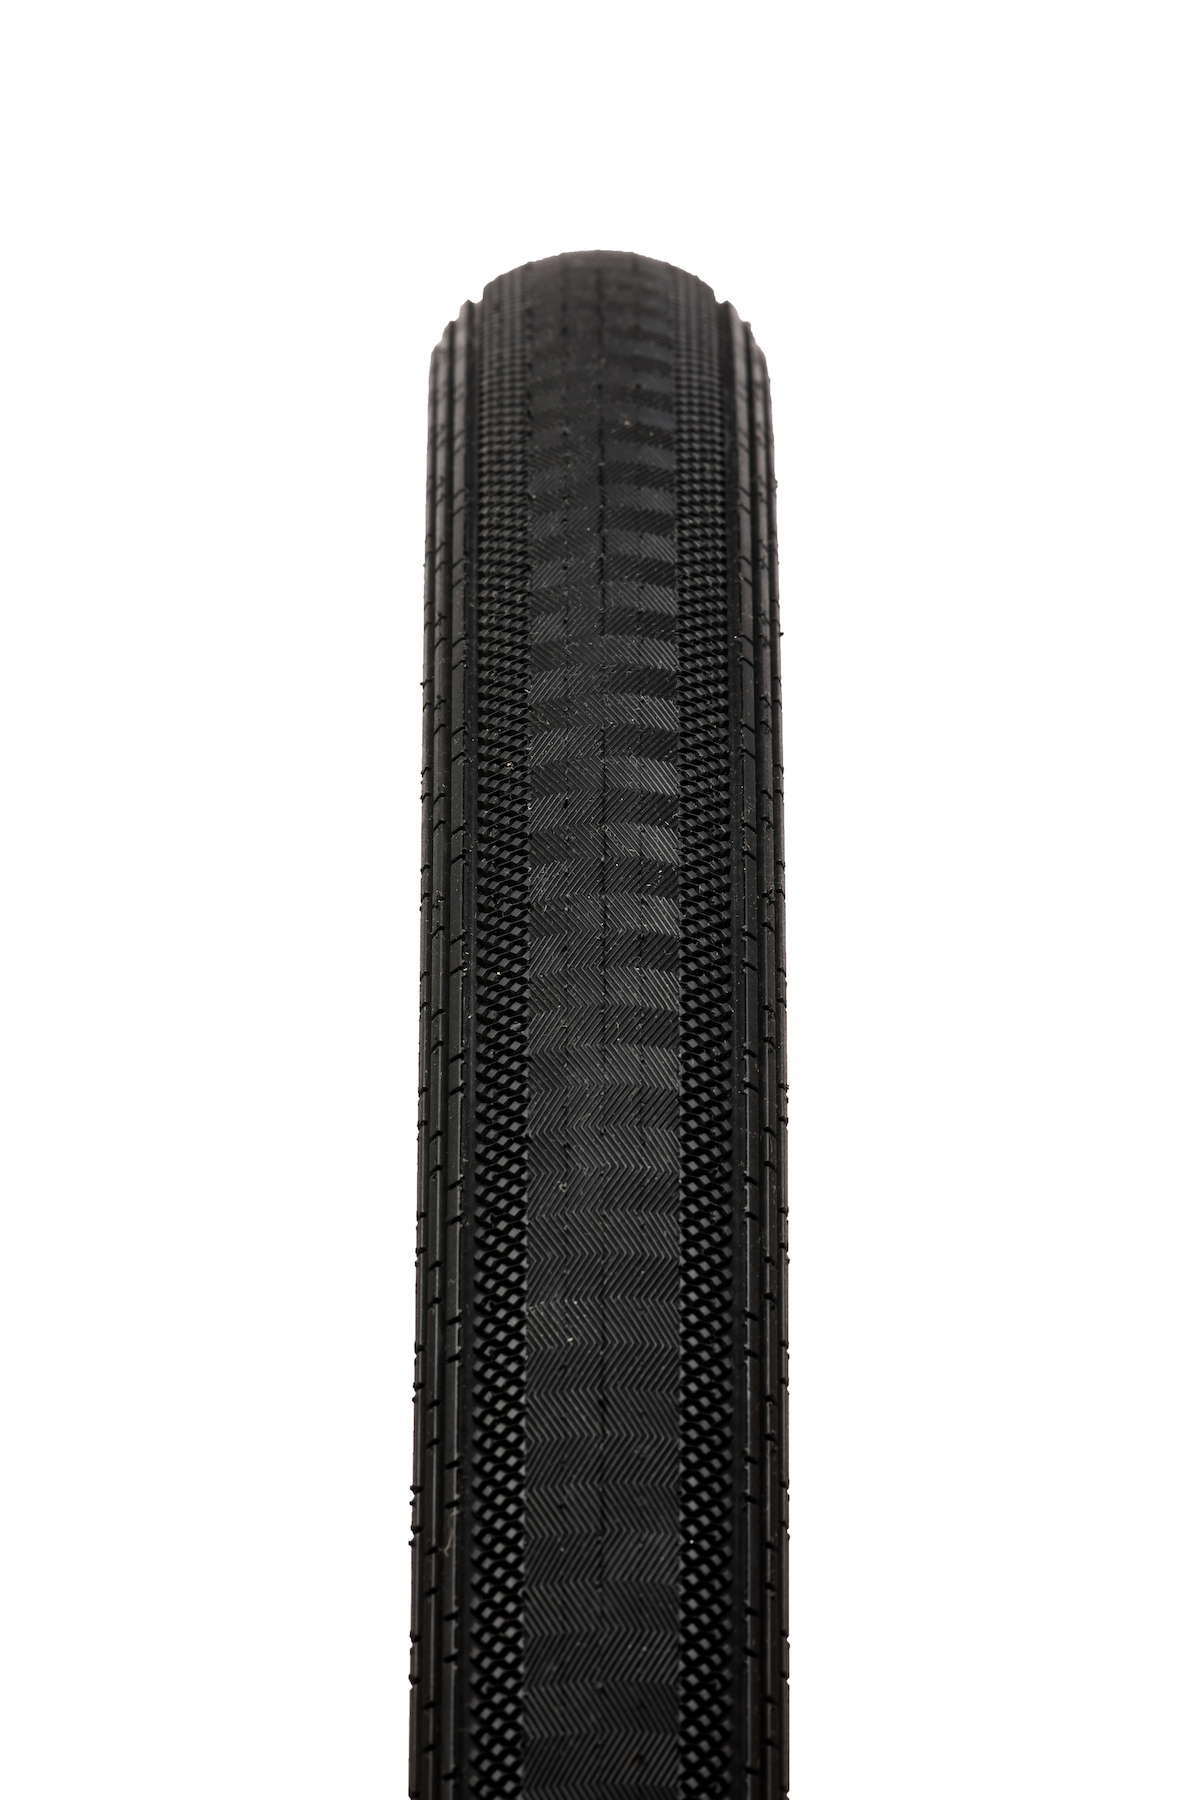 The SS and SS+ feature an all-new tread pattern consisting of a smoother, diamond pattern center with more aggressive side lugs